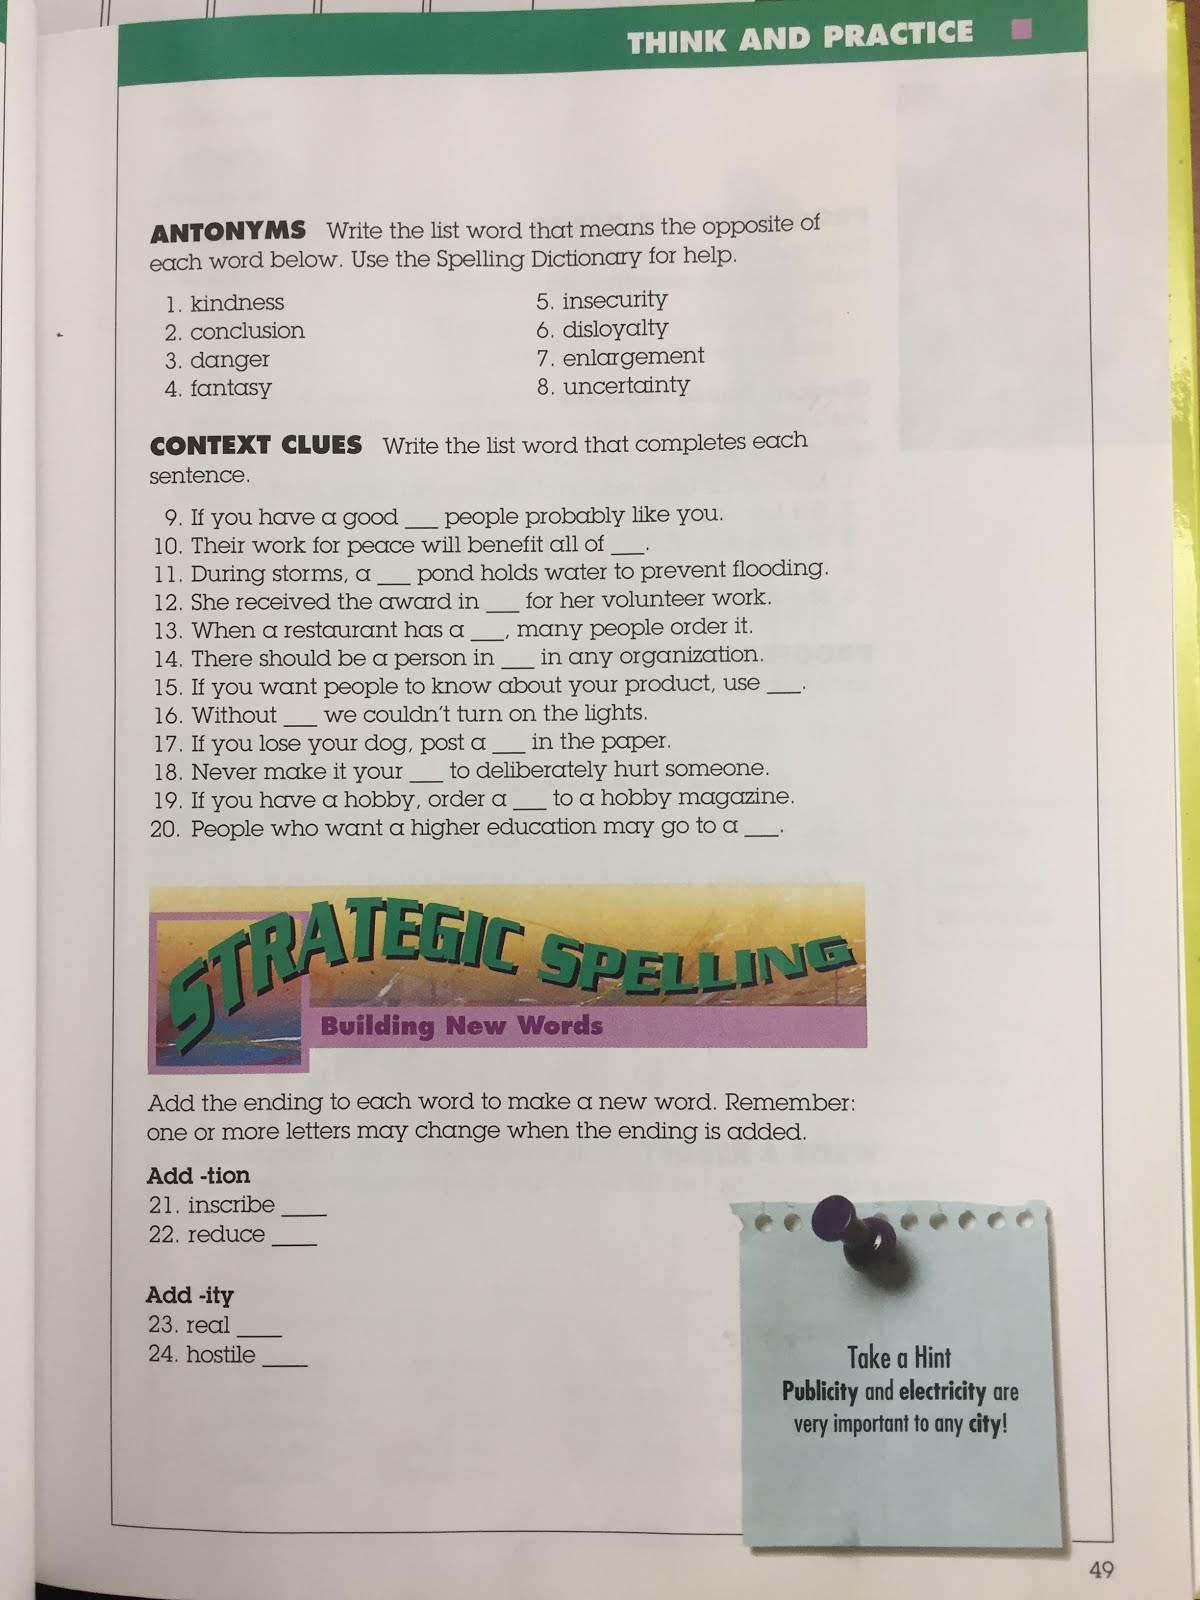 7 black ela 2017 today we completed tuesdays 5 a day grammar and spelling pages 49 1 20 and 51 1 10 the spelling pages are pictured below these spelling pages are spiritdancerdesigns Choice Image